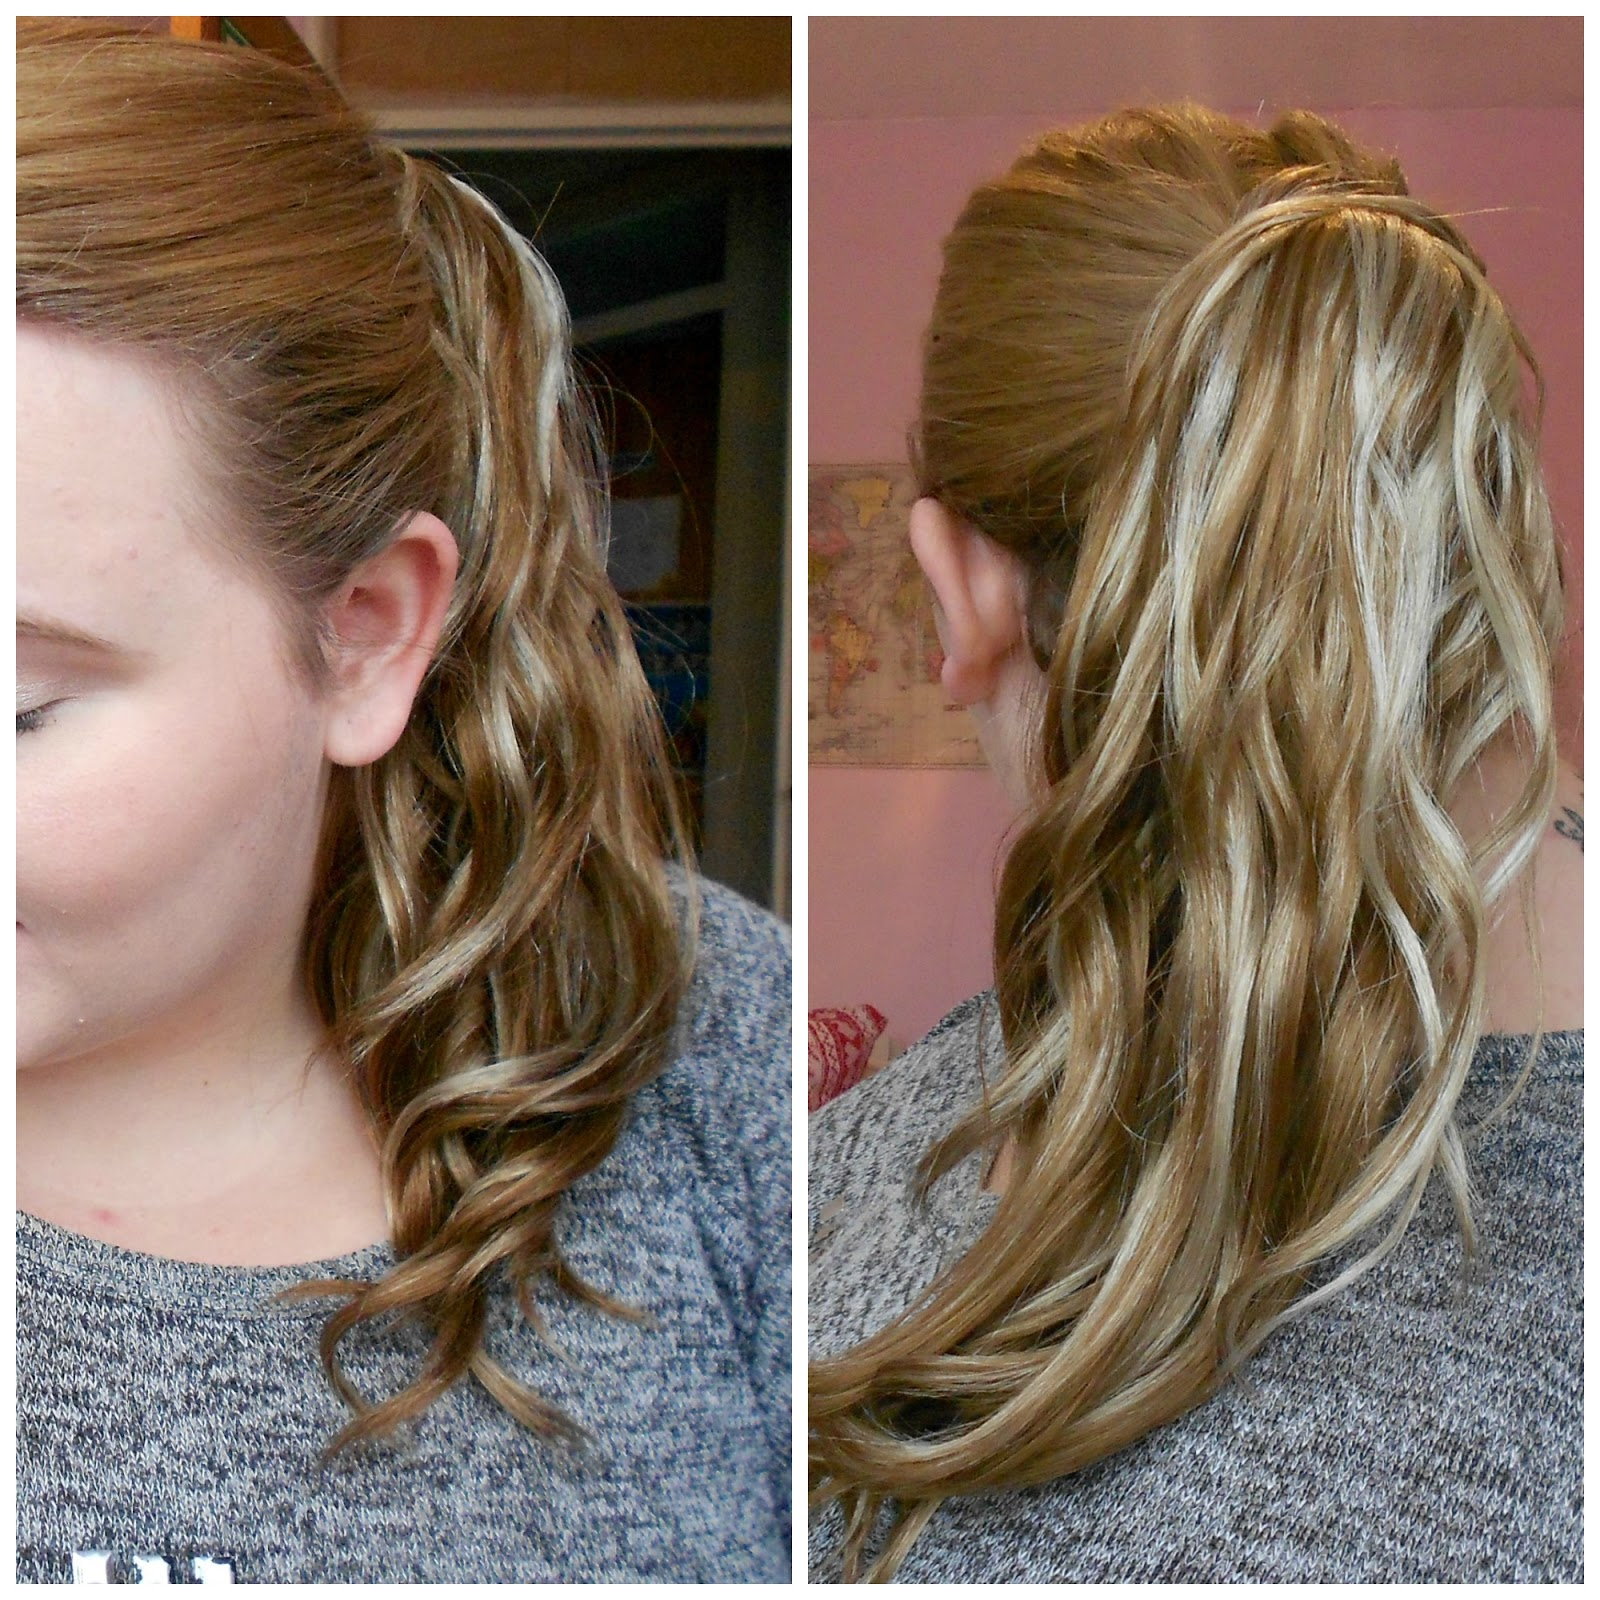 hot hair ponytail extension strawberry blonde mermaid